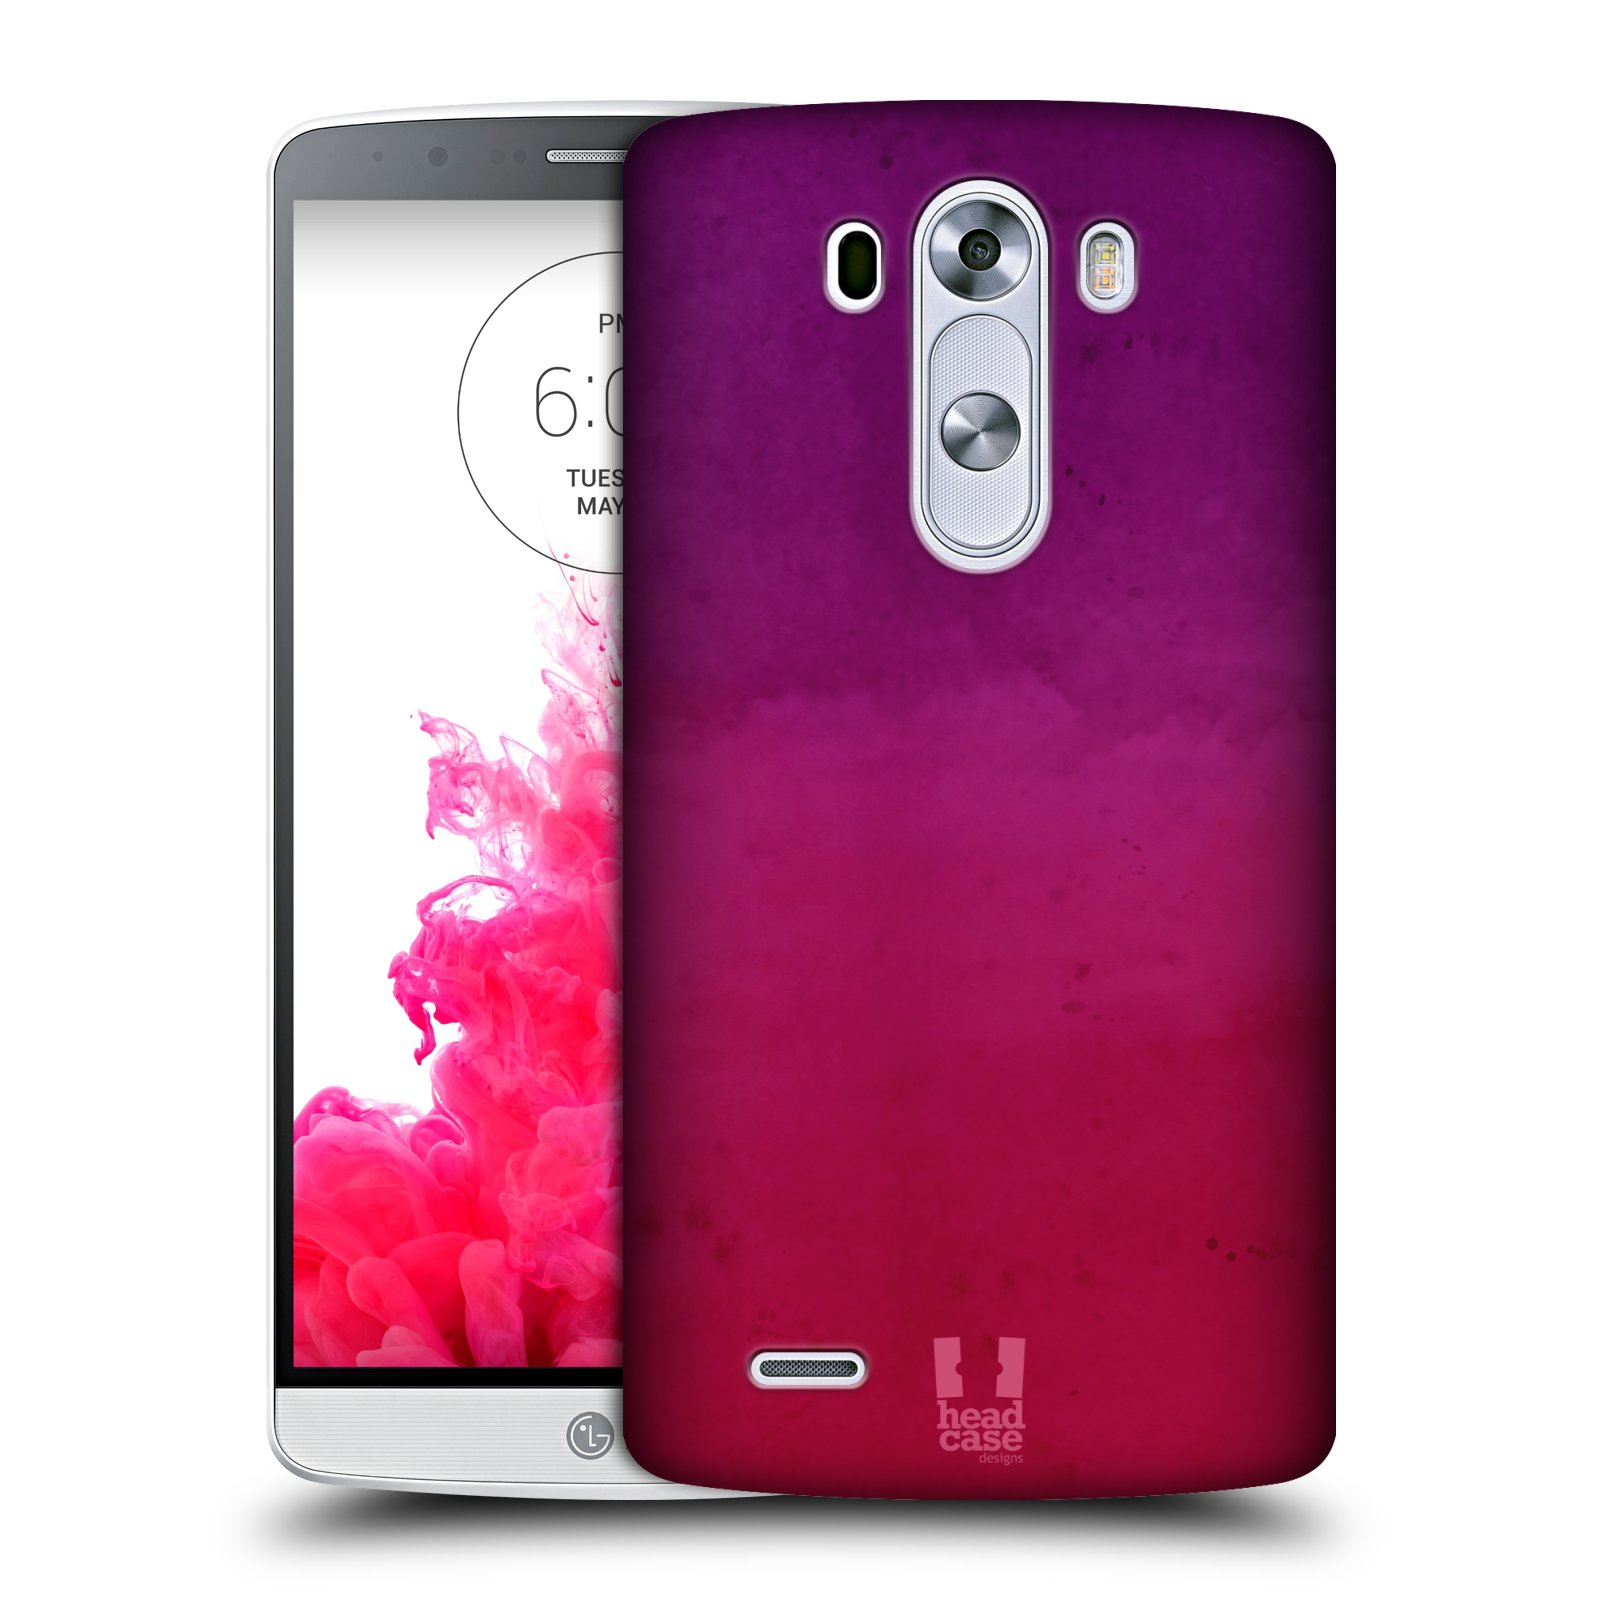 HEAD CASE DESIGNS WATERCOLOURED OMBRE HARD BACK CASE FOR LG PHONES 1